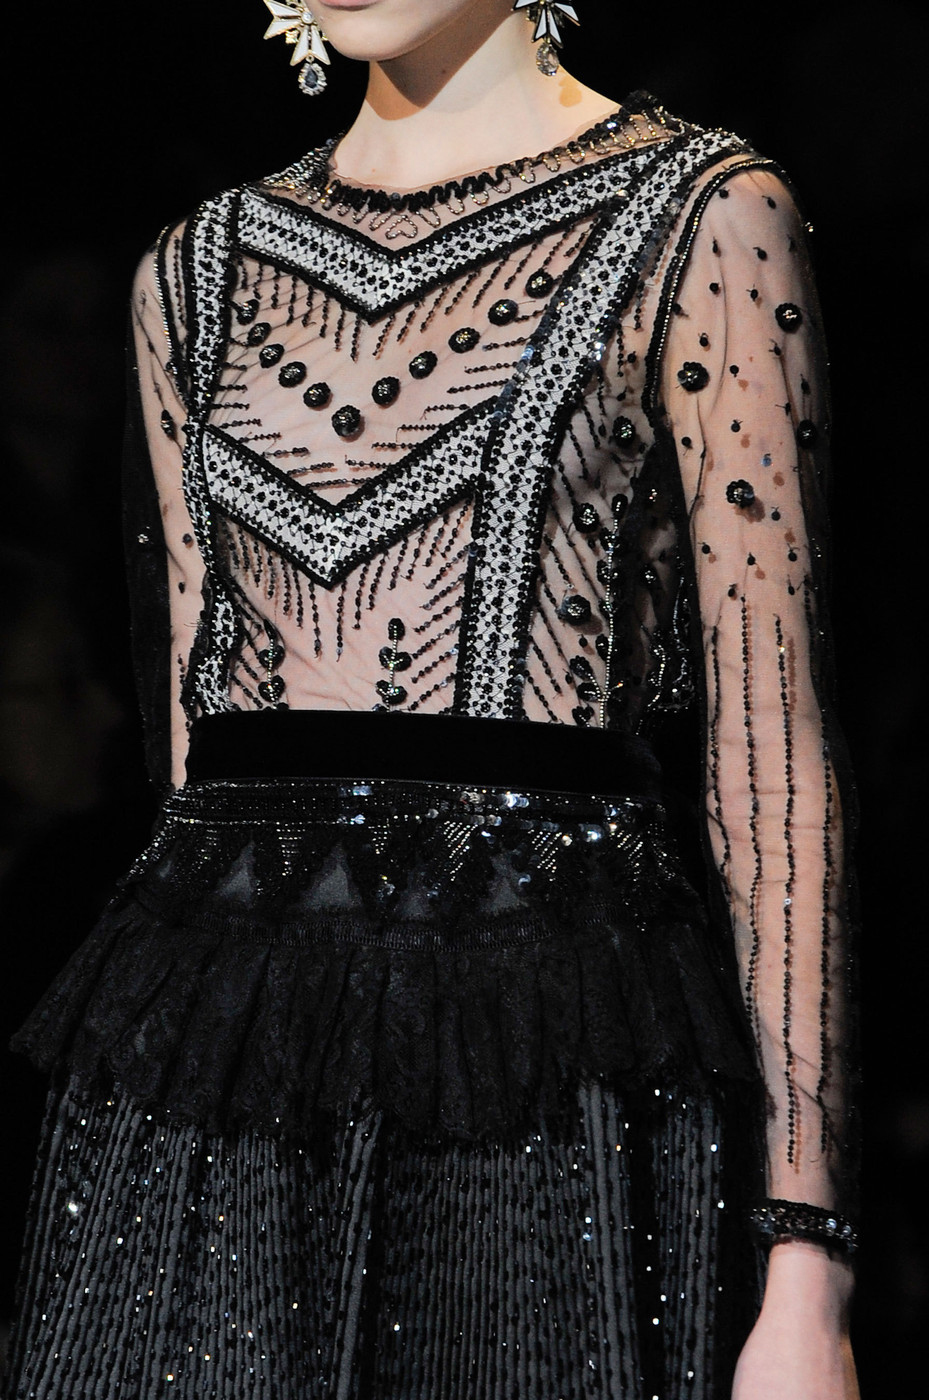 Alberta Ferretti Fall/Winter 2013